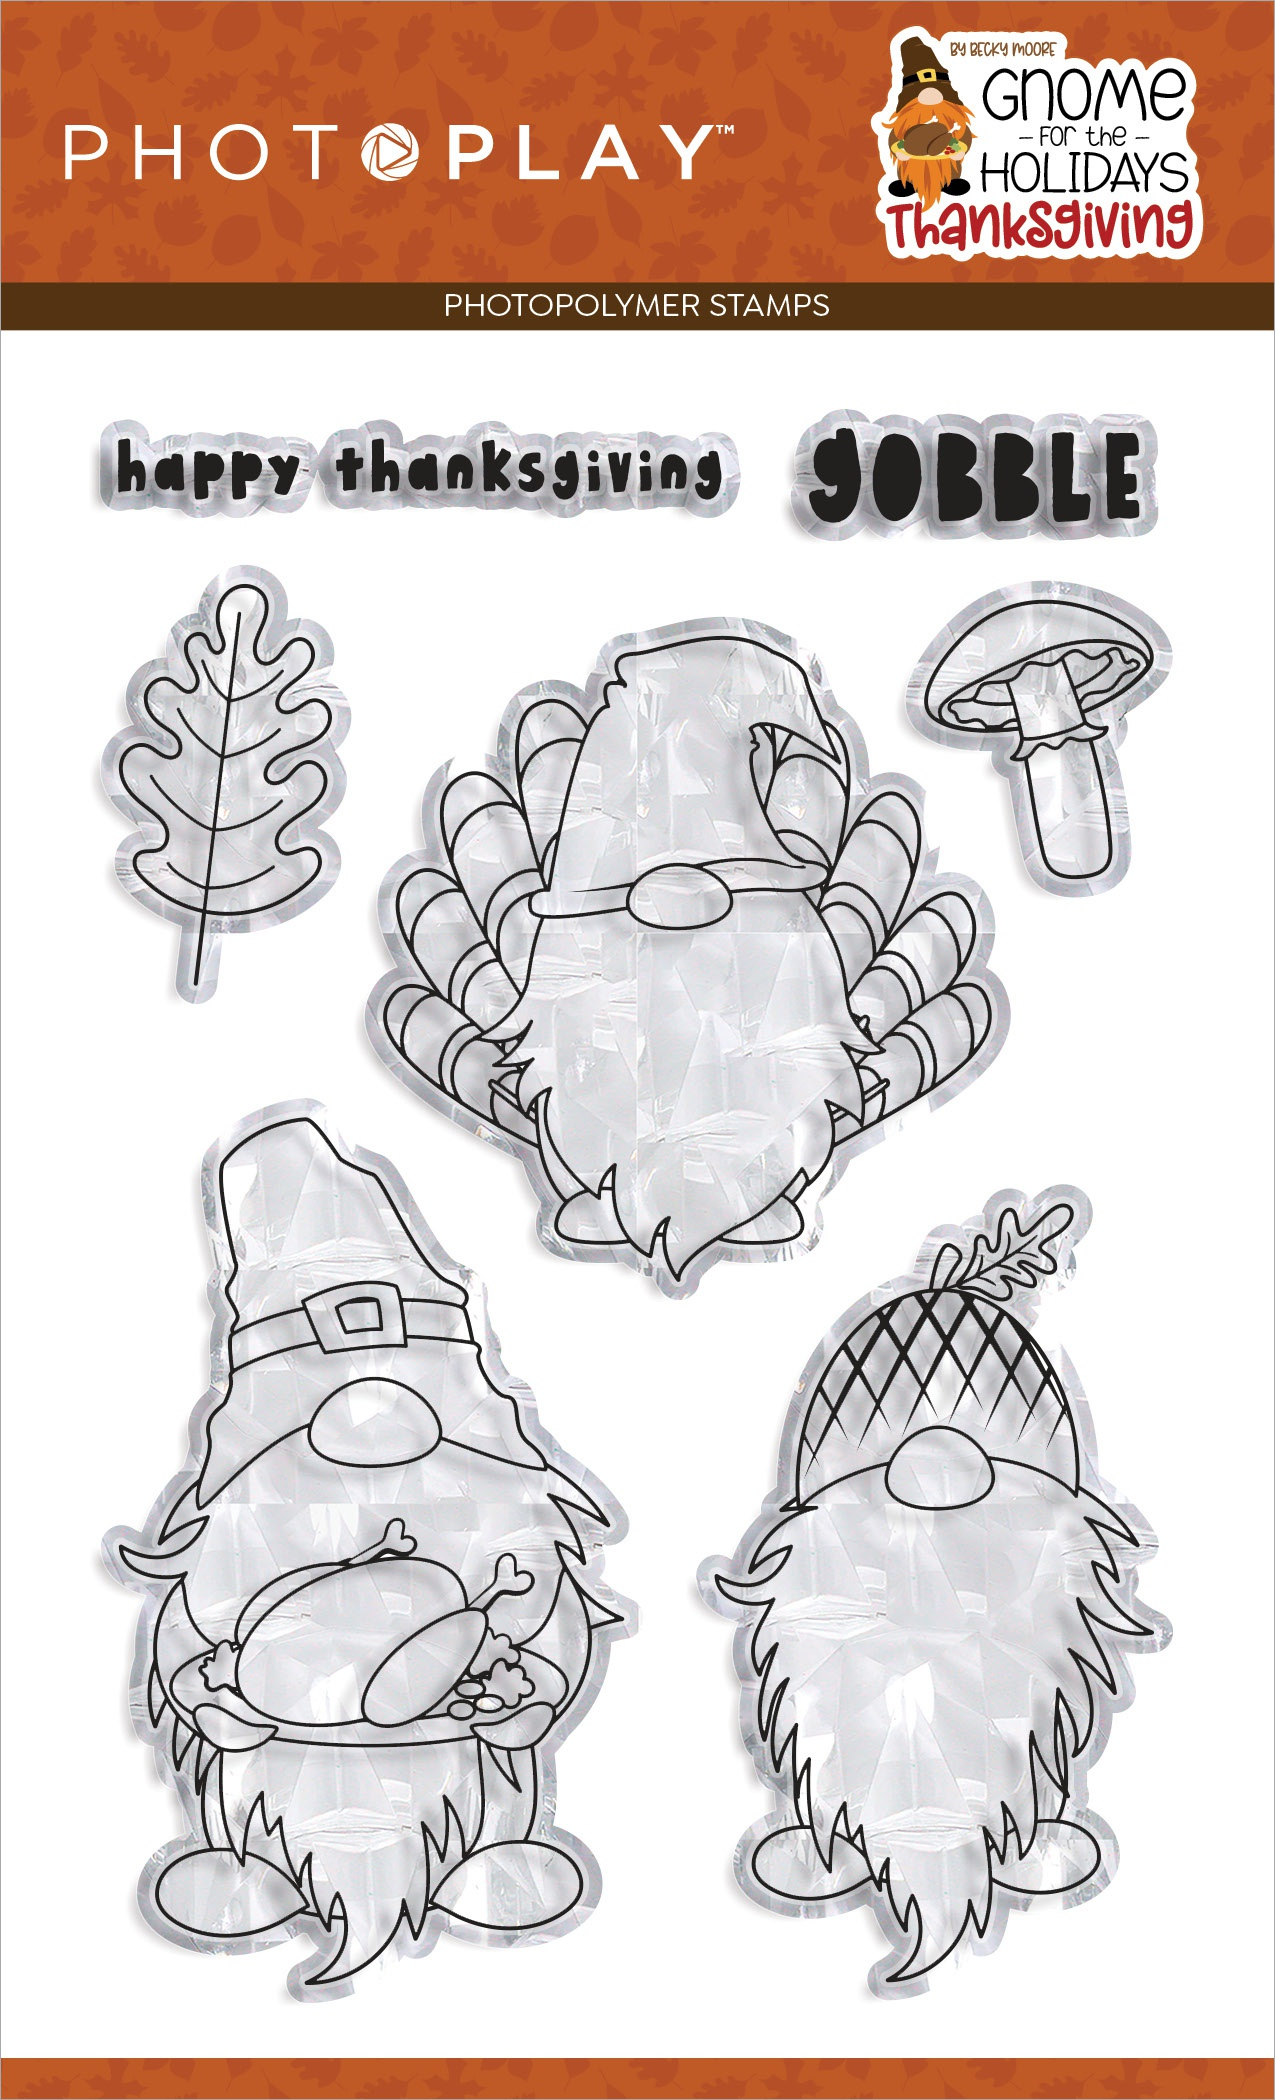 PhotoPlay Photopolymer Stamp-Gnome For Thanksgiving